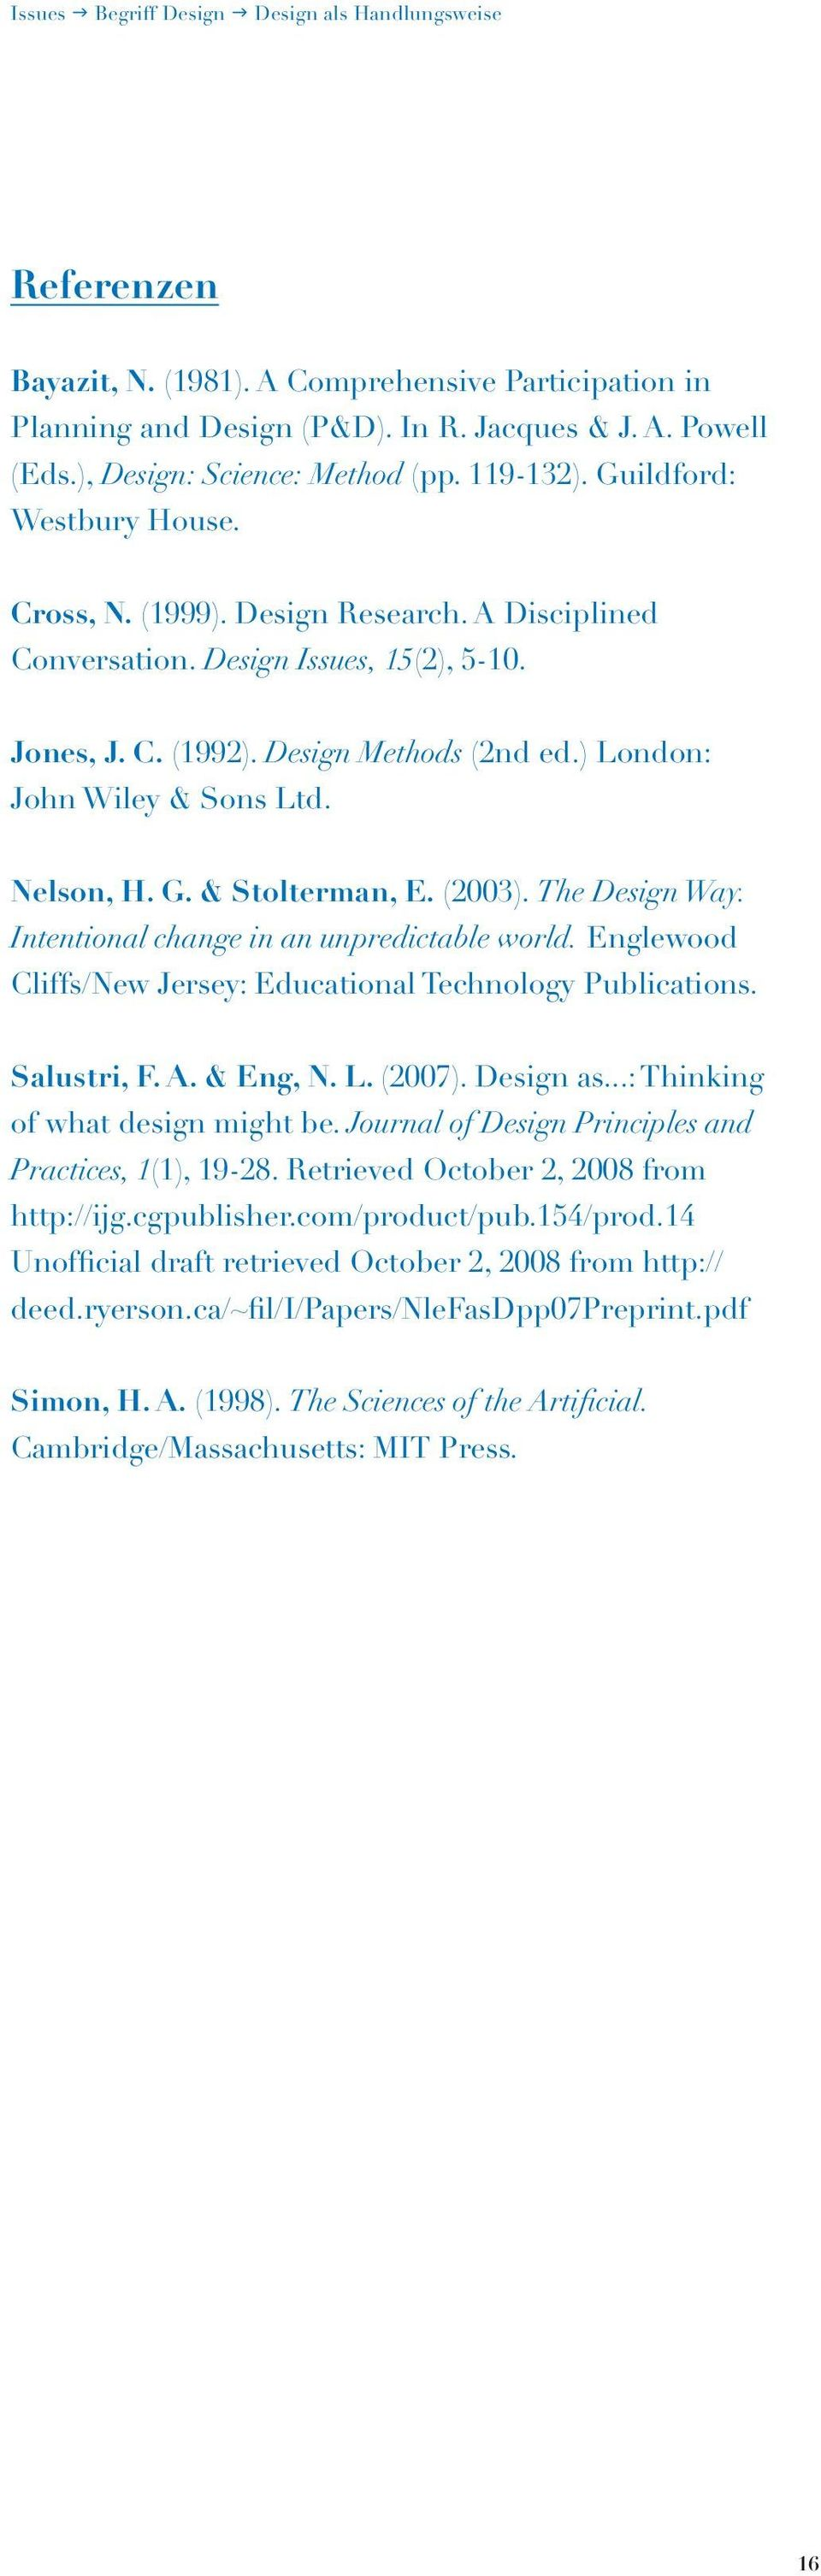 Design Methods (2nd ed.) London: John Wiley & Sons Ltd. Nelson, H. G. & Stolterman, E. (2003). The Design Way. Intentional change in an unpredictable world.